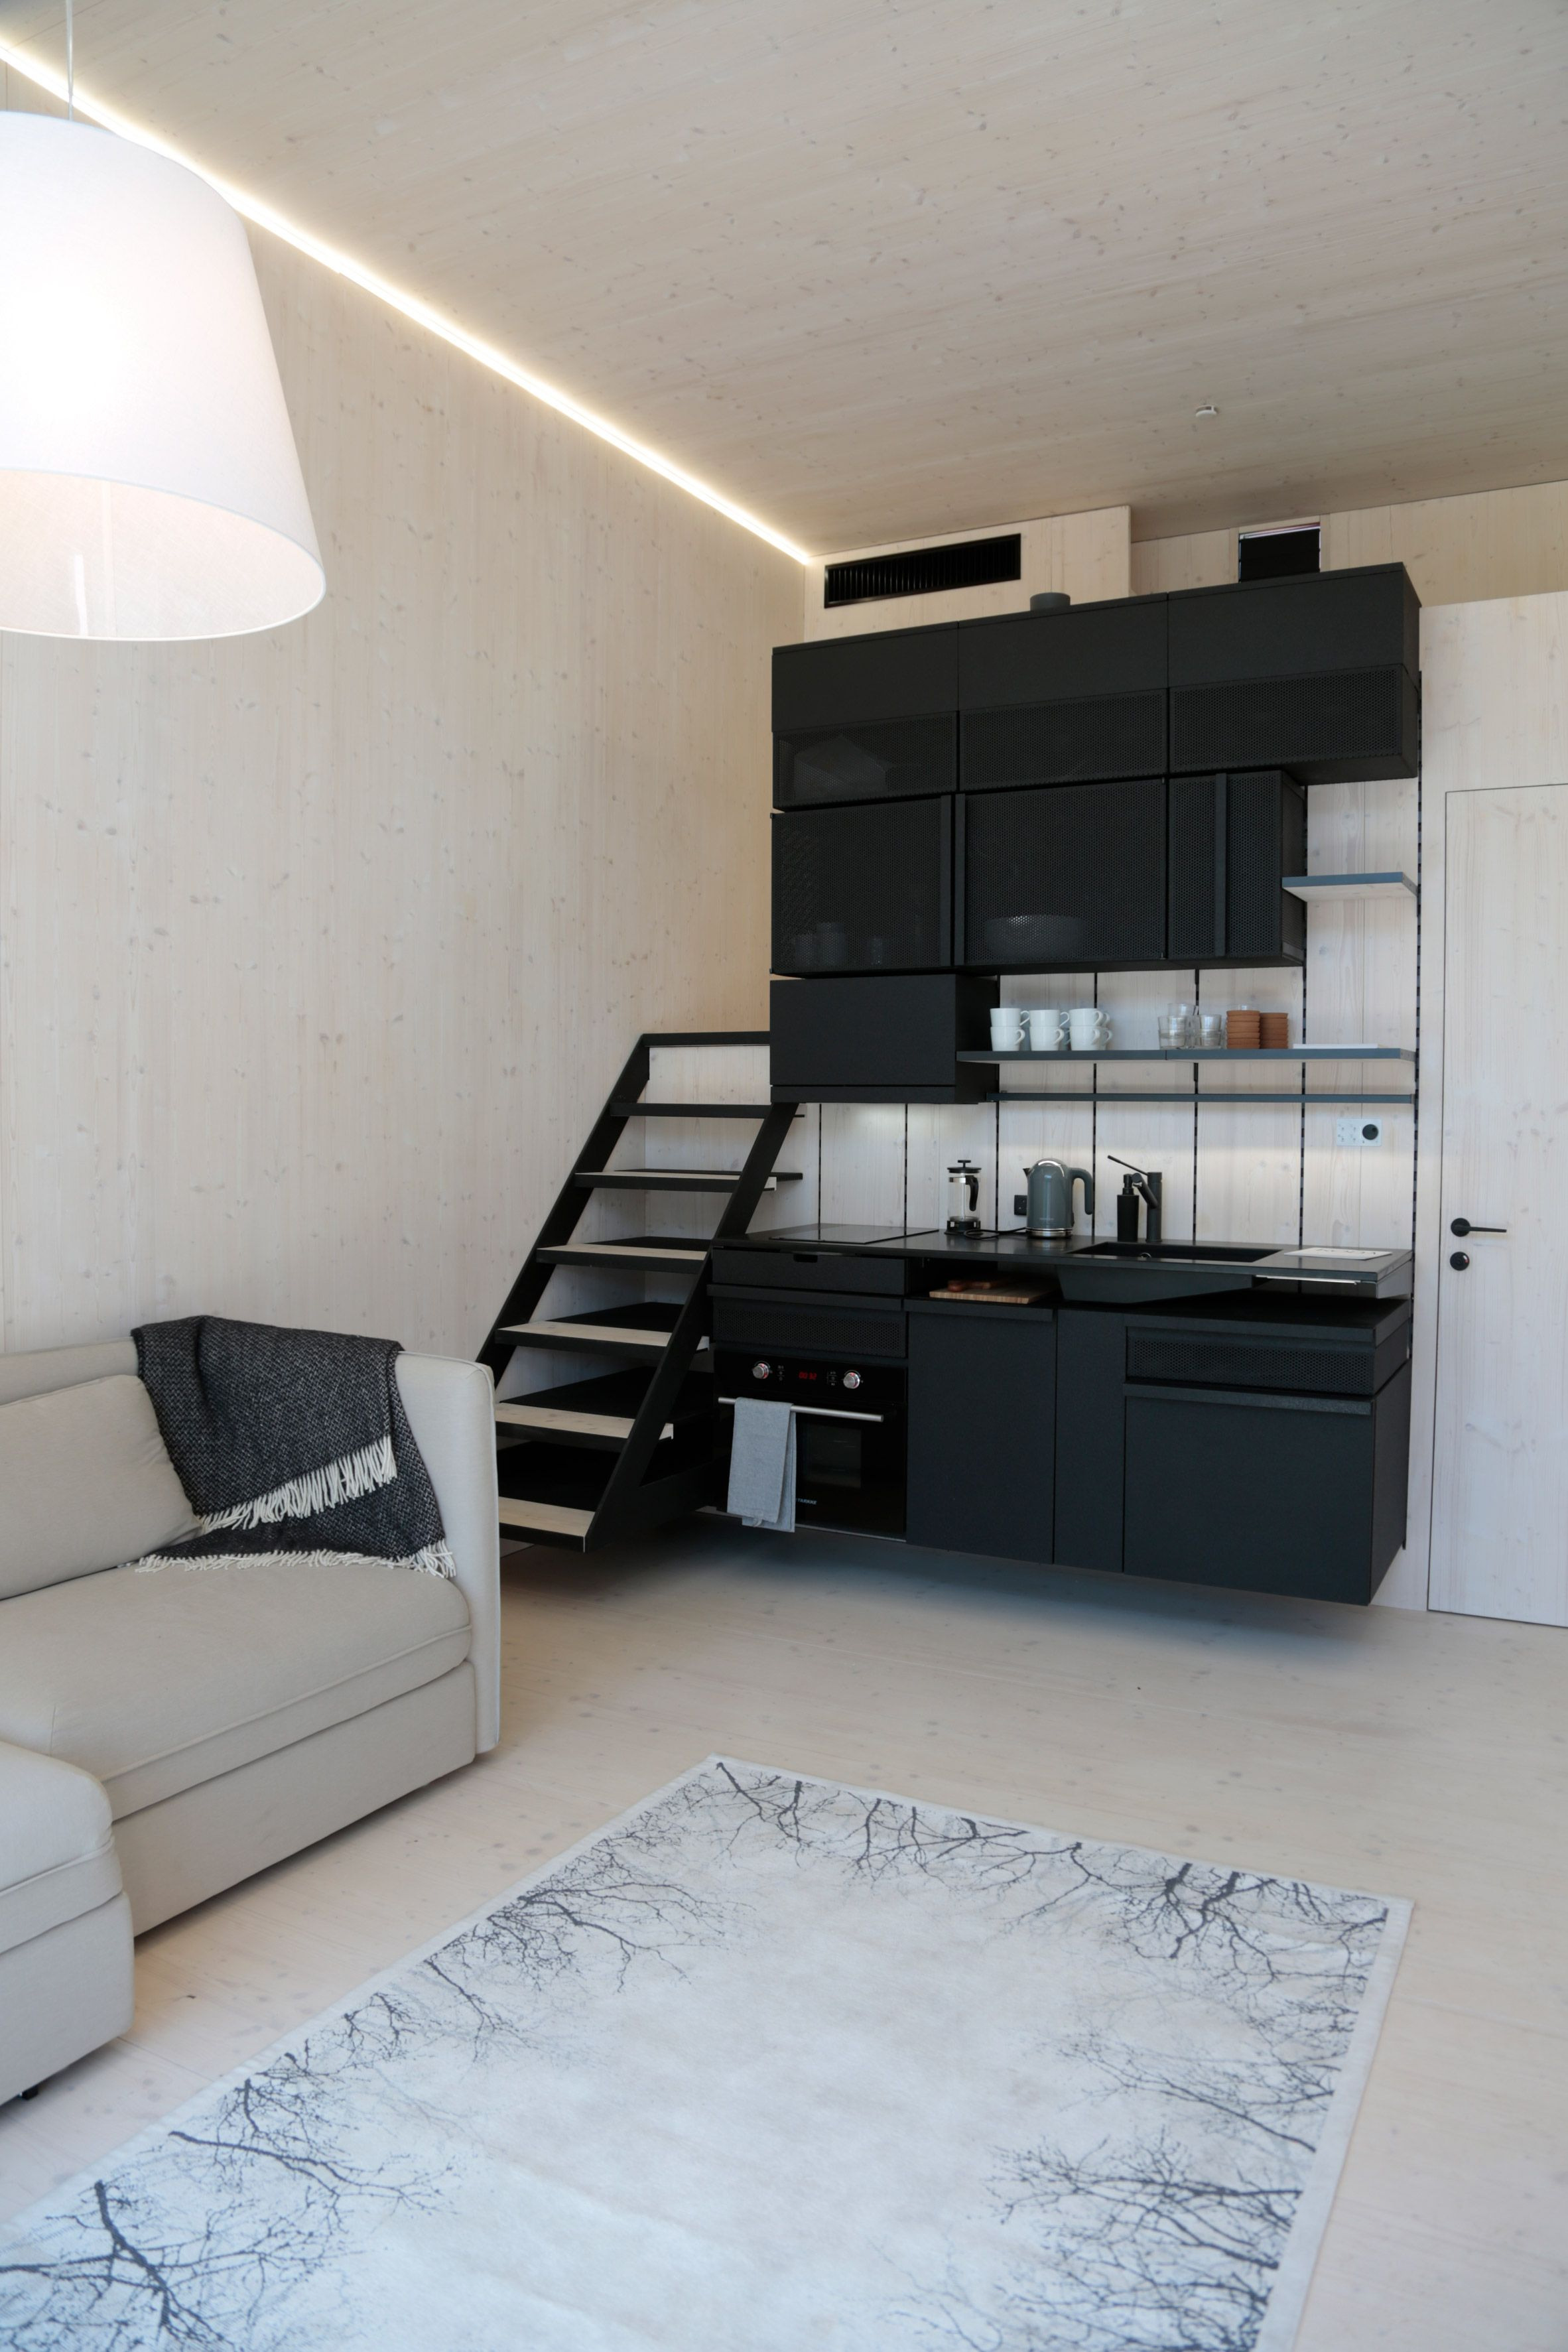 Houses that Can Be Built for Under 150k Beautiful Kodasema Launches Tiny Prefab Home for £150k In Uk